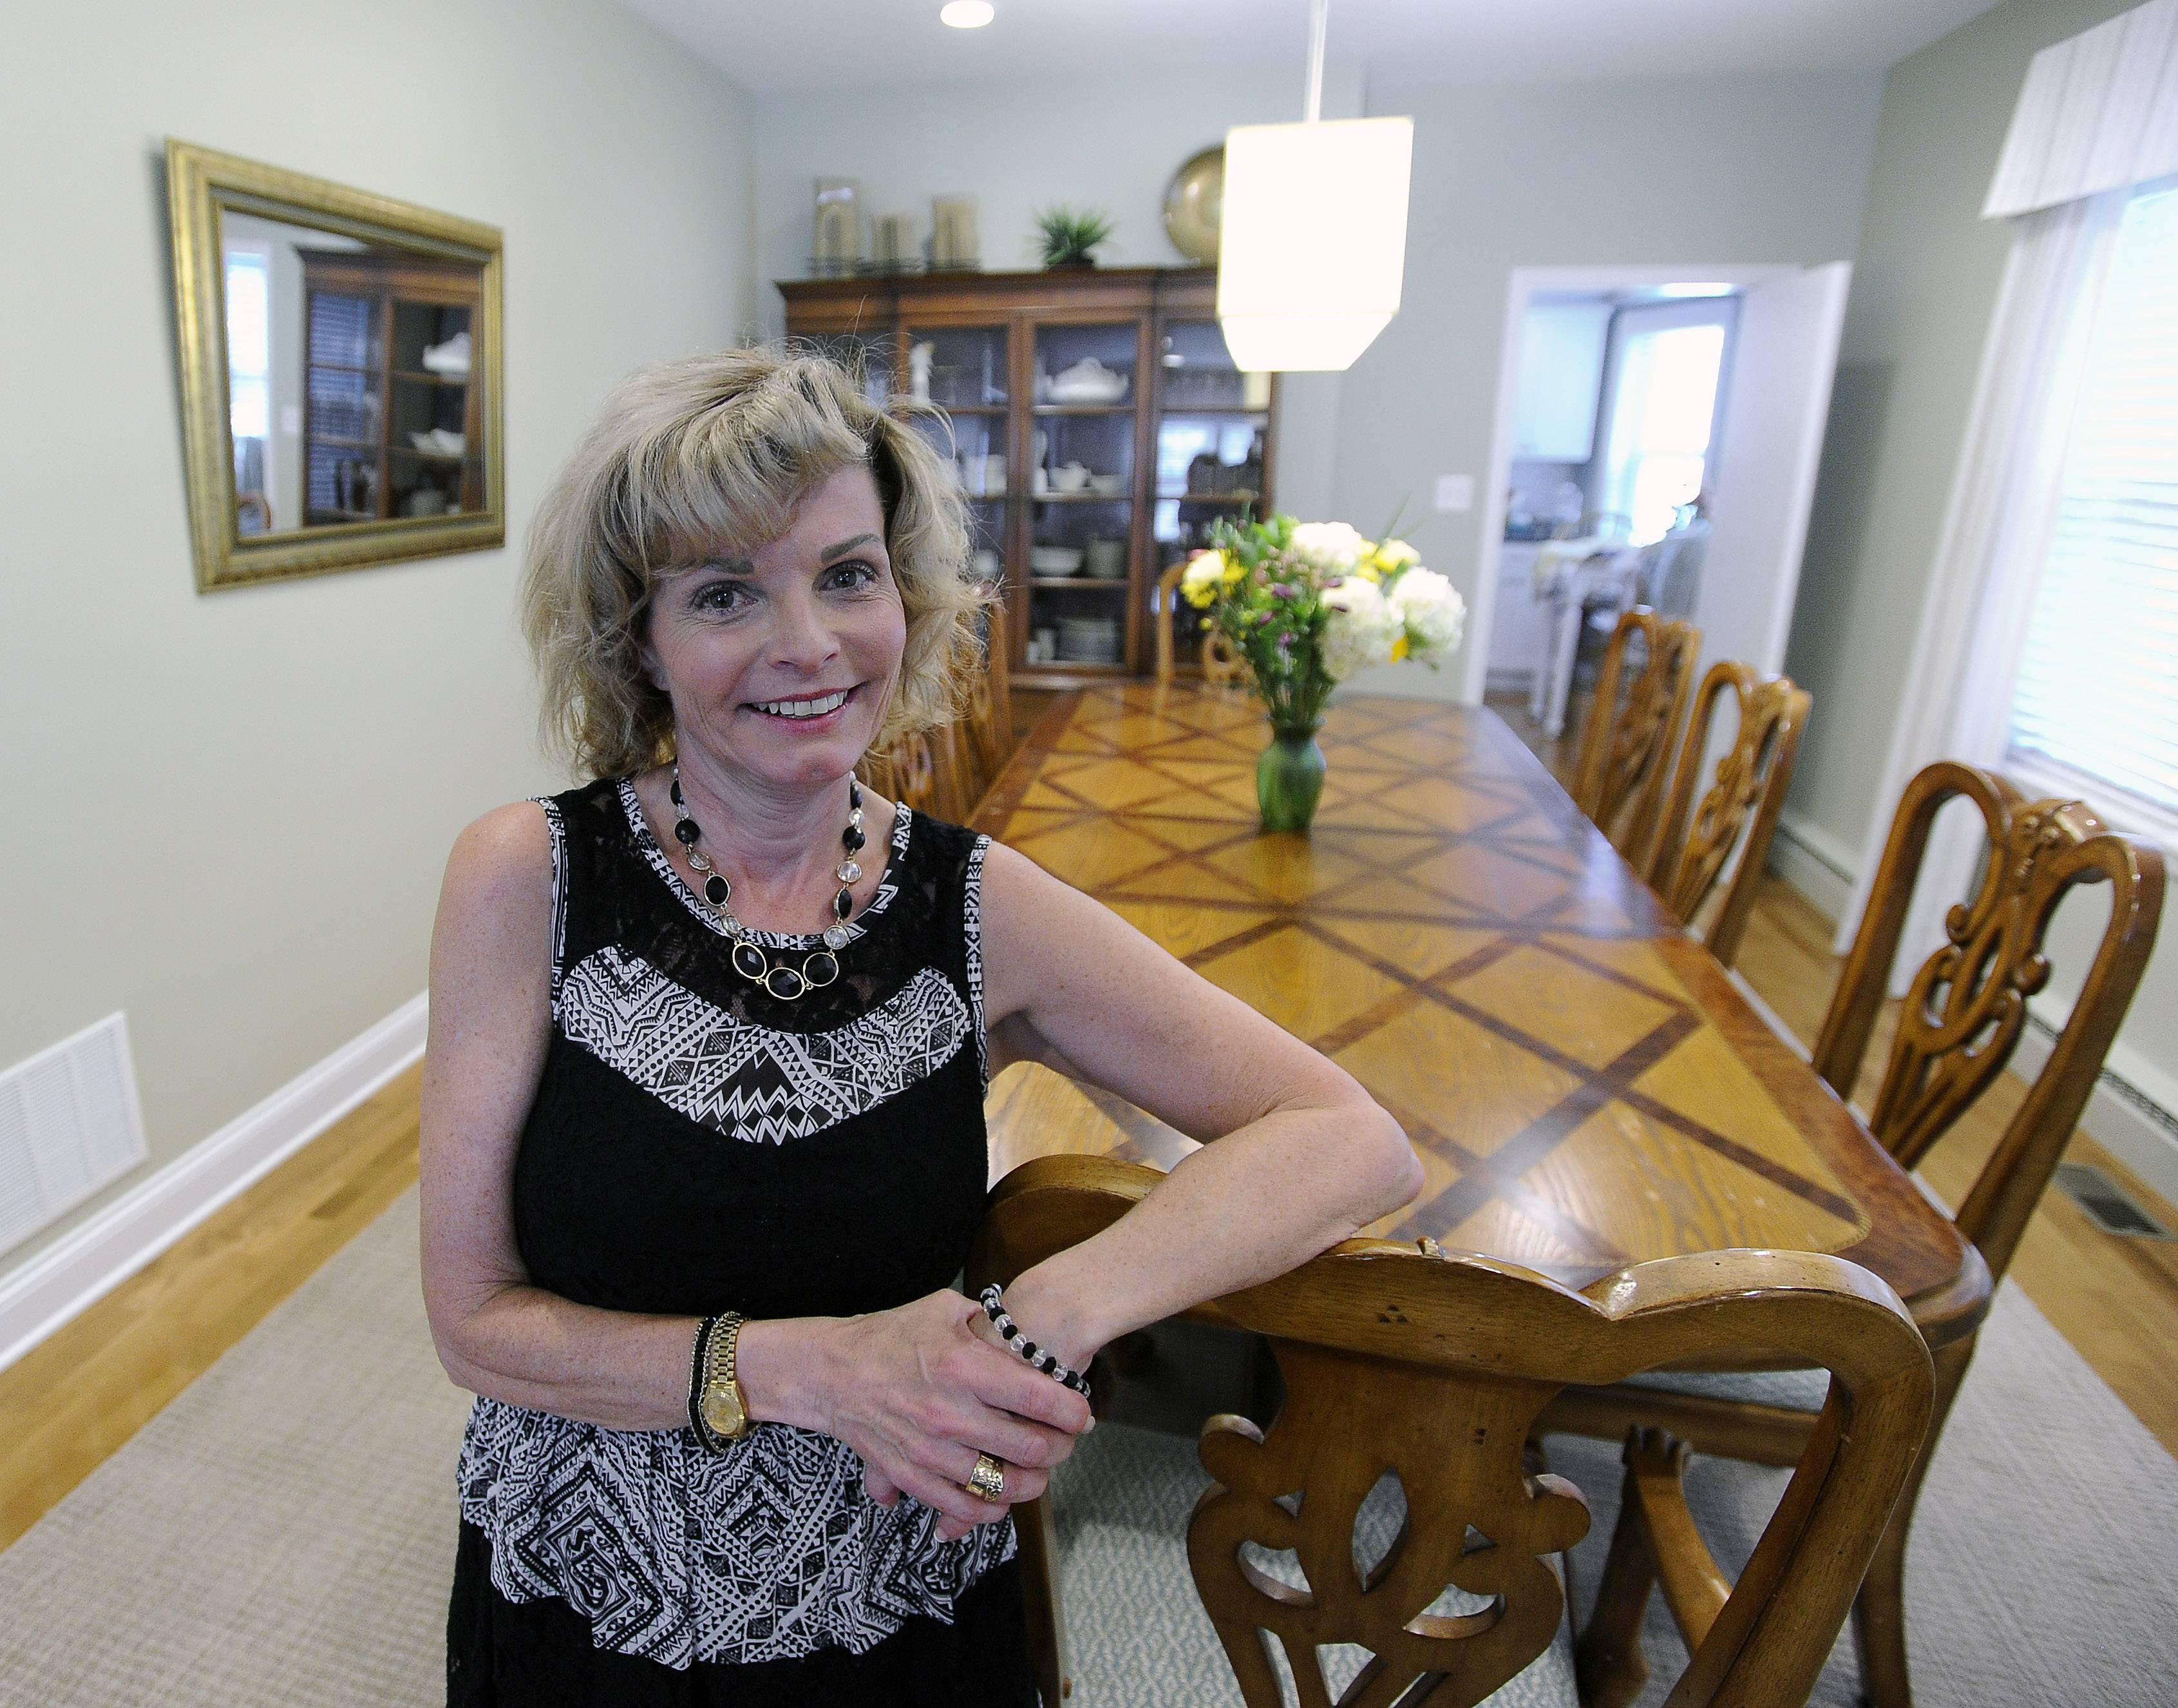 arlington divorced singles Suddenly single in arlington megan donnelly never imagined she would one day be a divorced mother, navigating the singles scene here in her 40s.